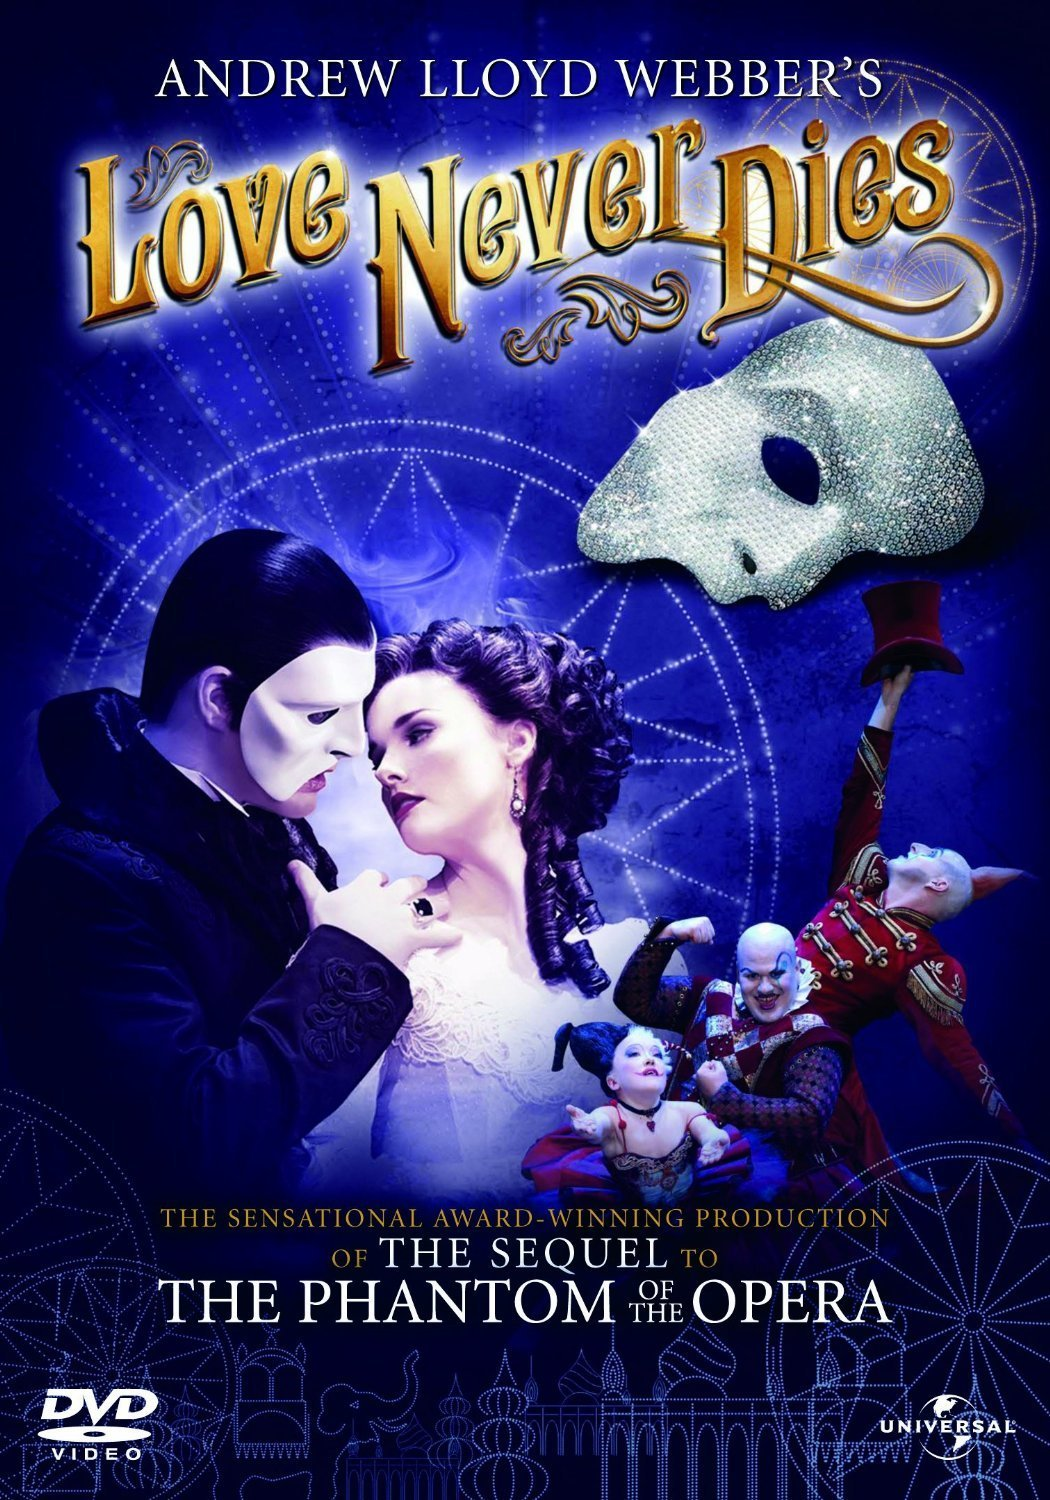 affiche du film Love Never Dies